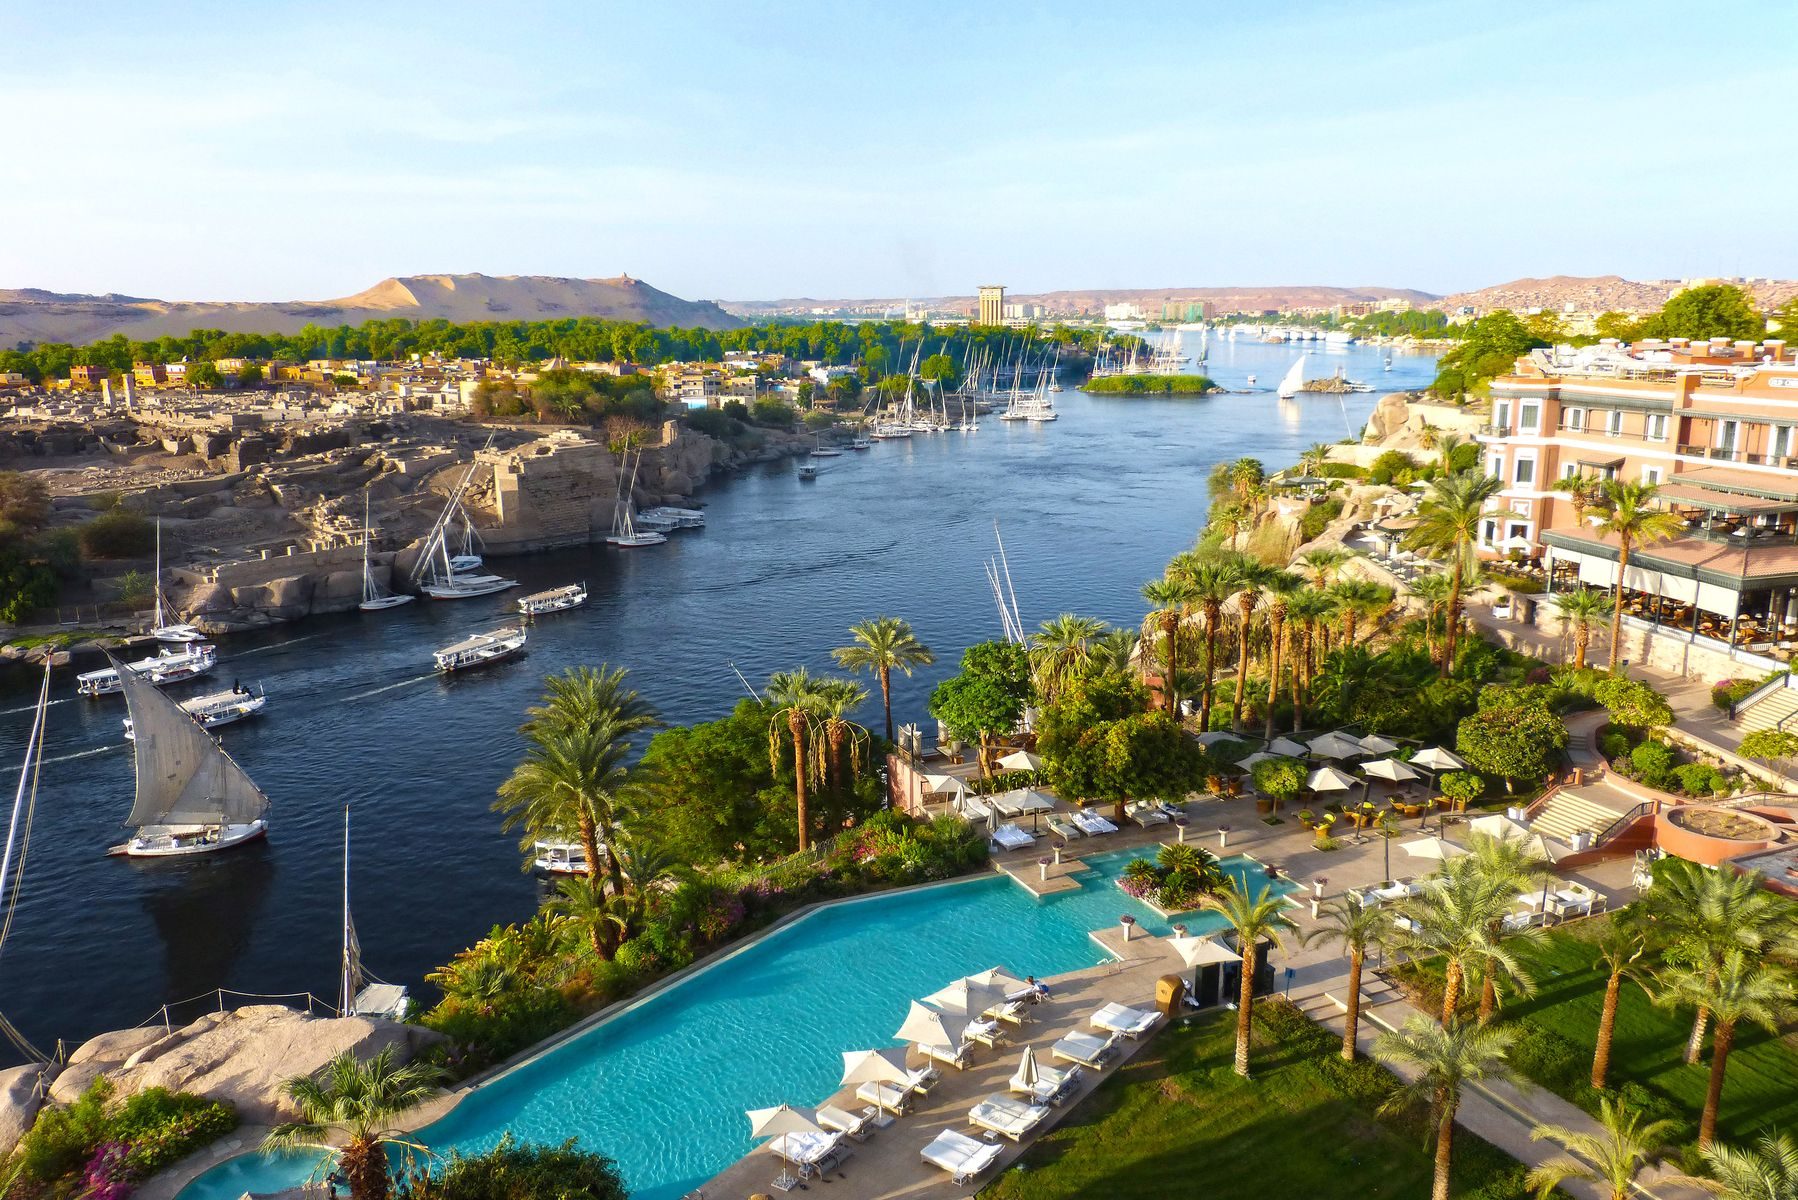 Caire - Luxor - Aswan